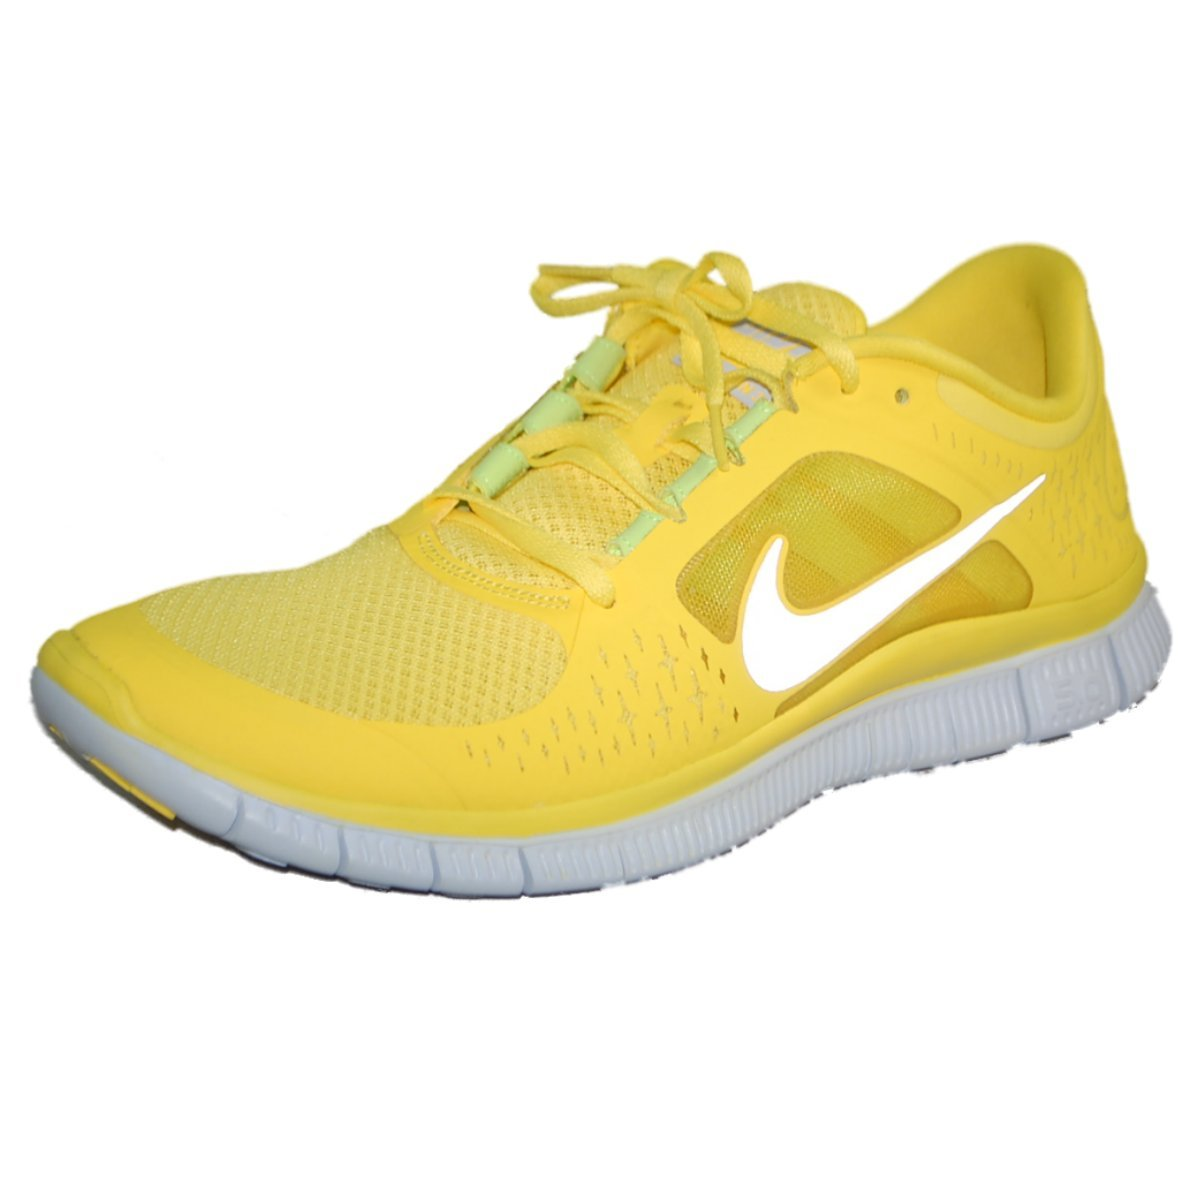 low priced 96022 42e3f Nike Free Run 3 Mens Running Shoes 510642-600